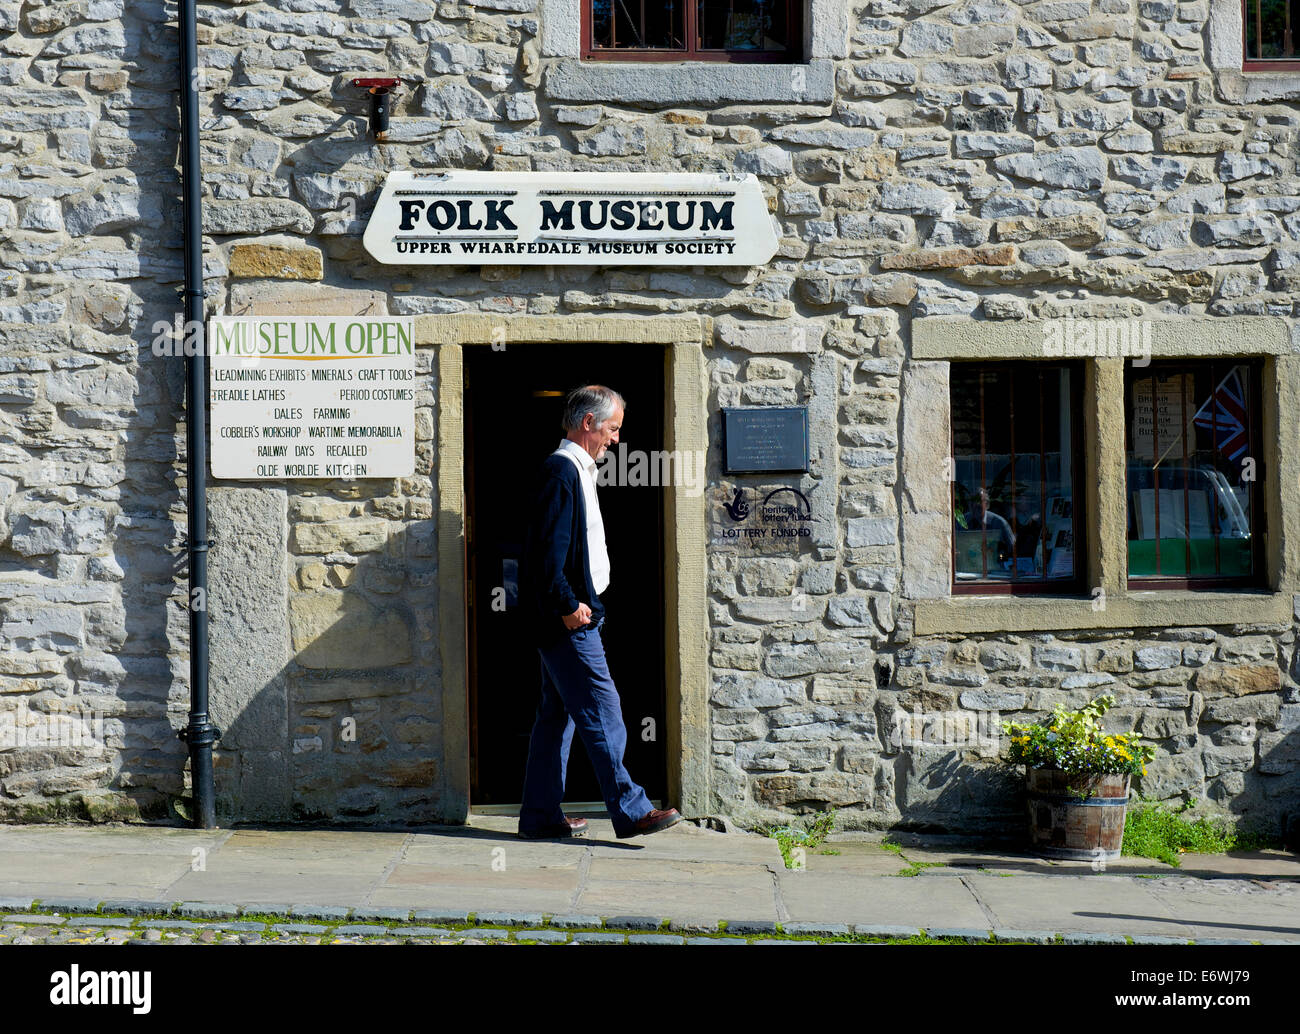 Man walking past the Folk Museum, Grassington, Wharfedale, Yorkshire Dales National Park, North Yorkshire, England - Stock Image